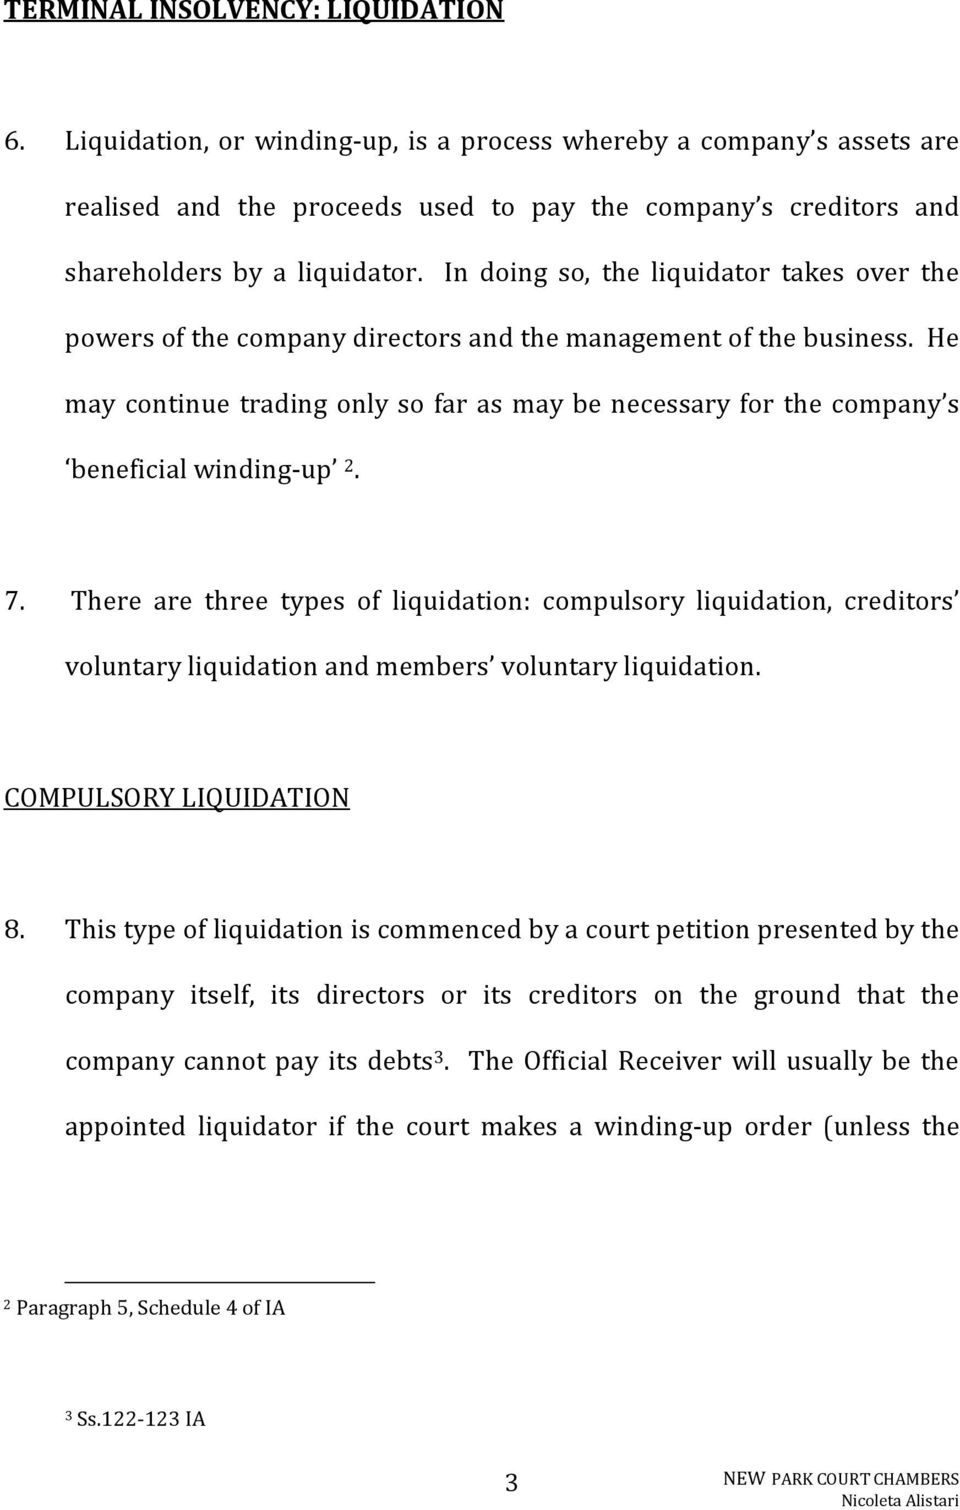 In doing so, the liquidator takes over the powers of the company directors and the management of the business.